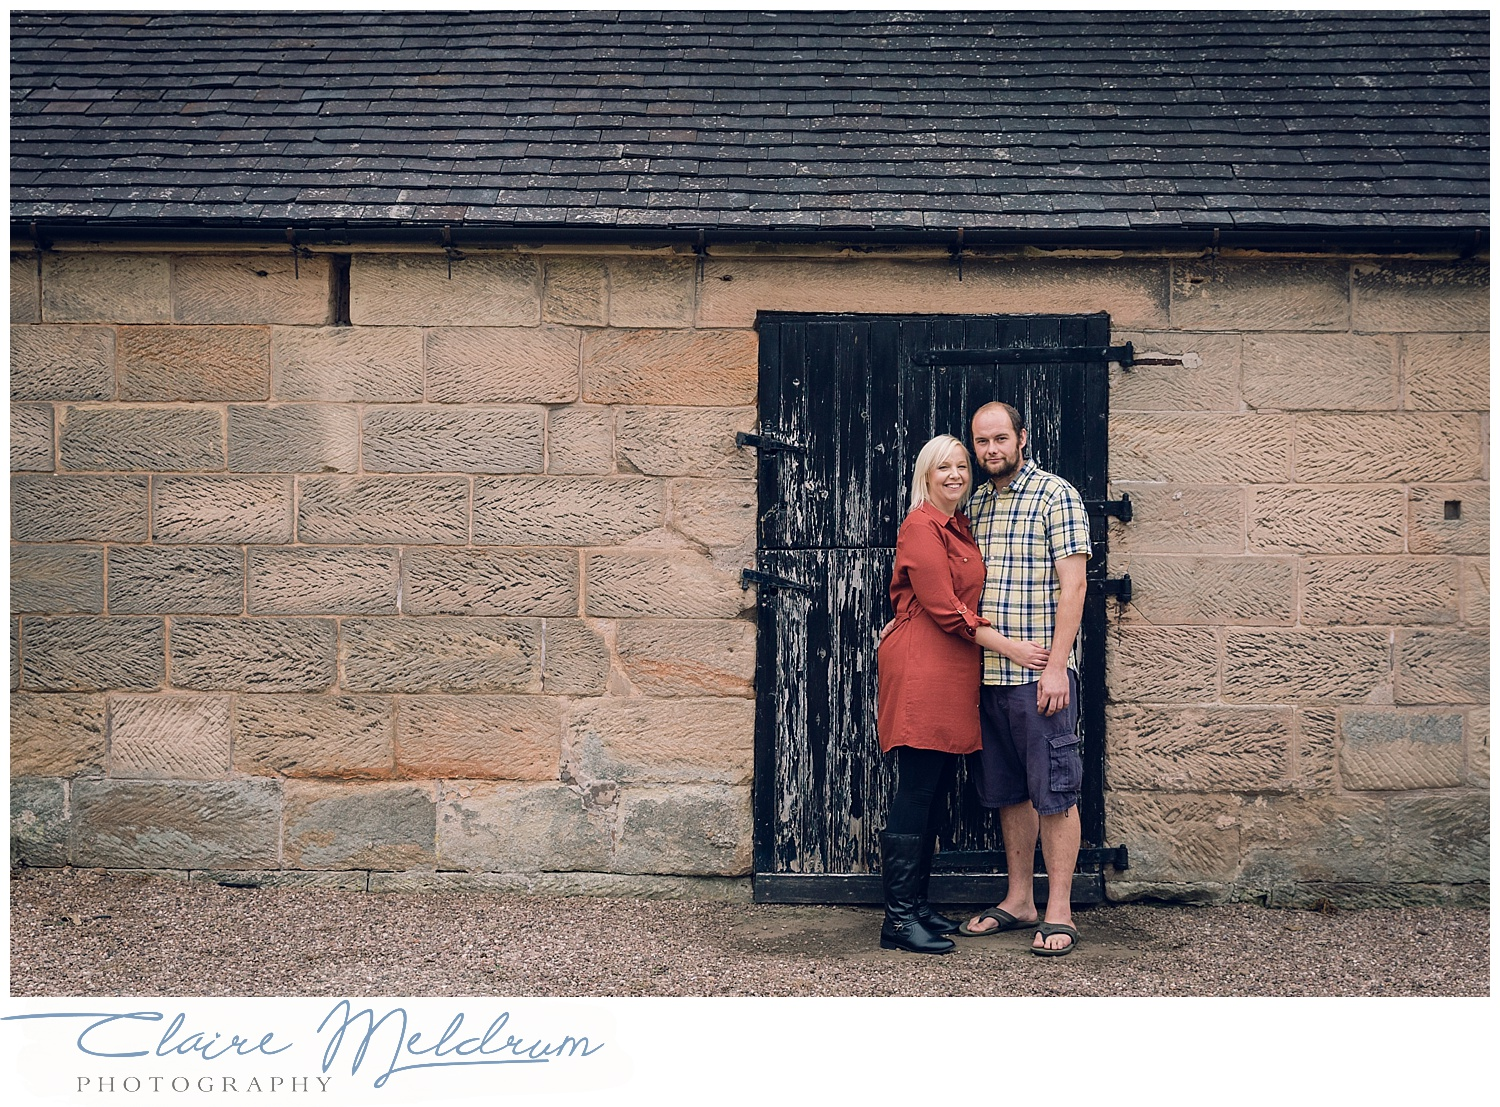 Staffordshire Wedding Photographer. Natural, candid images. Claire Meldrum Photography.